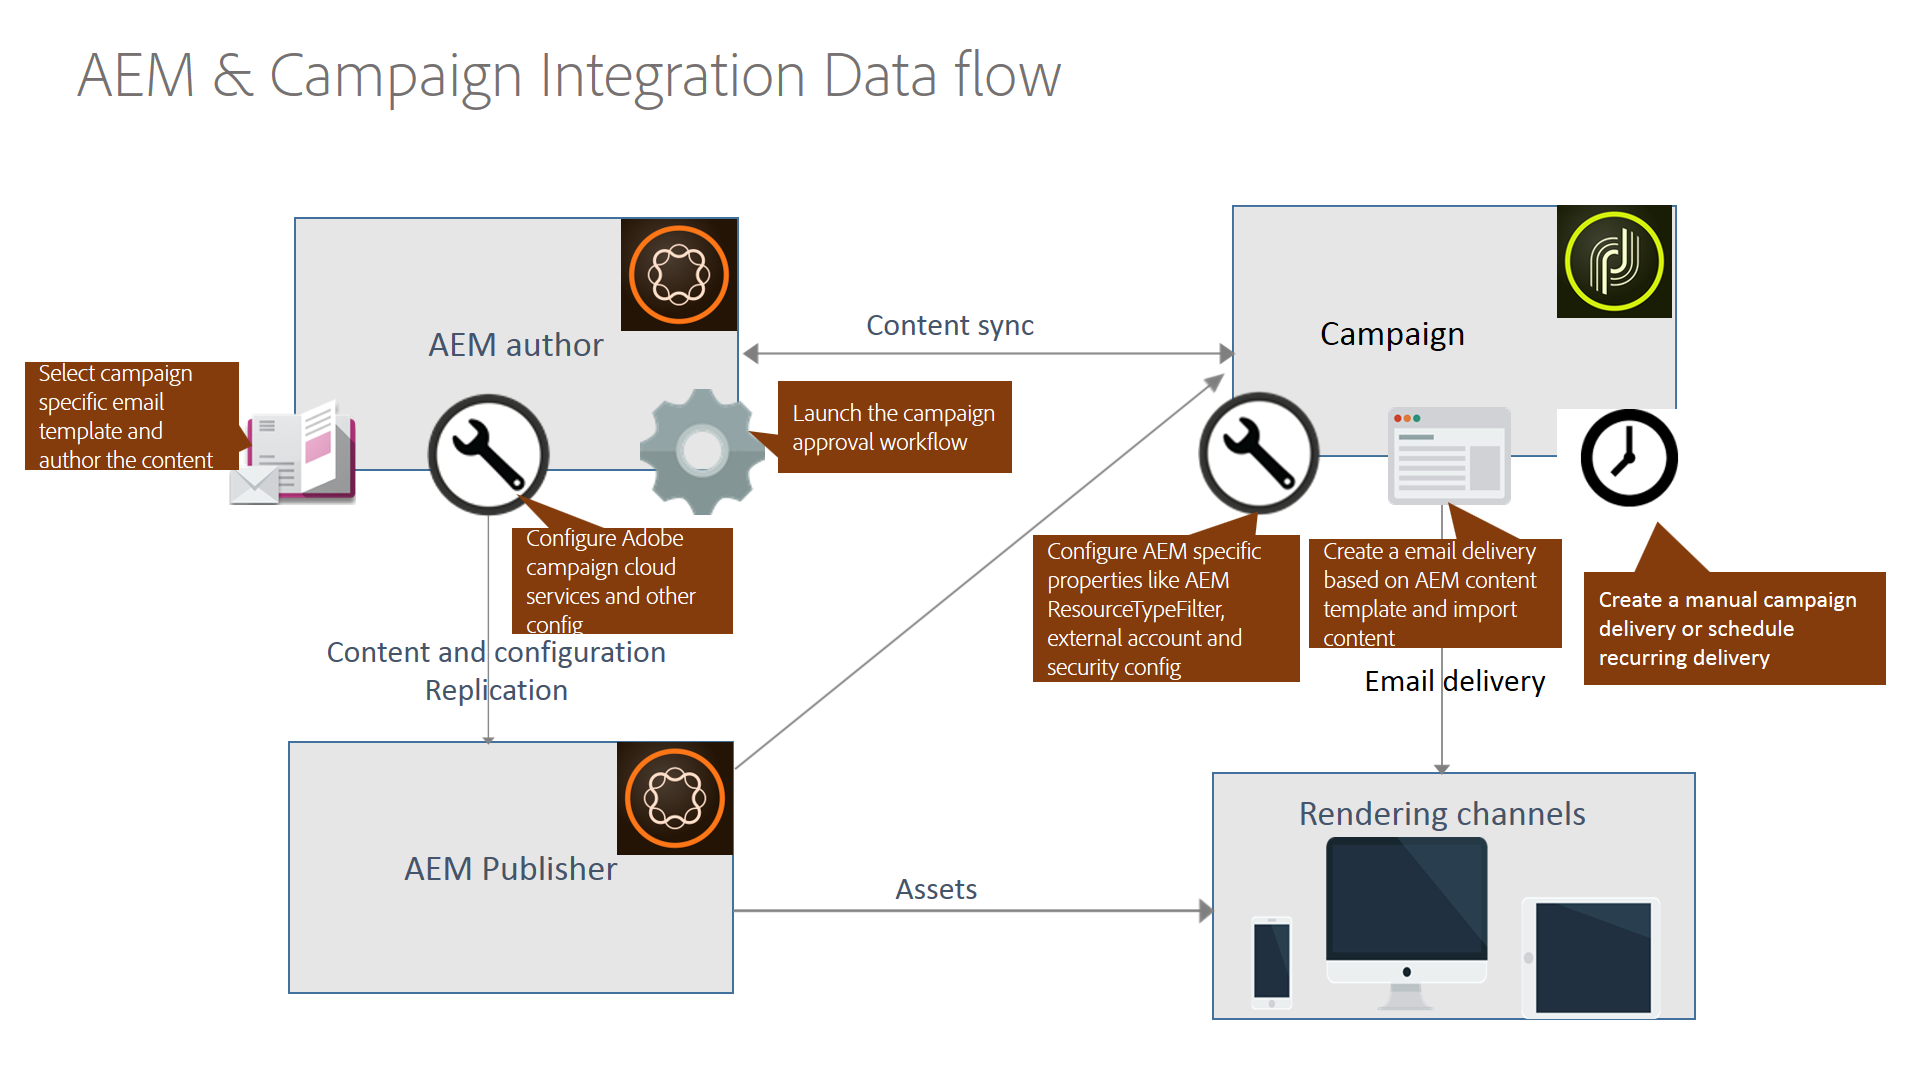 AEM to Campaign v6 Implementation Guide